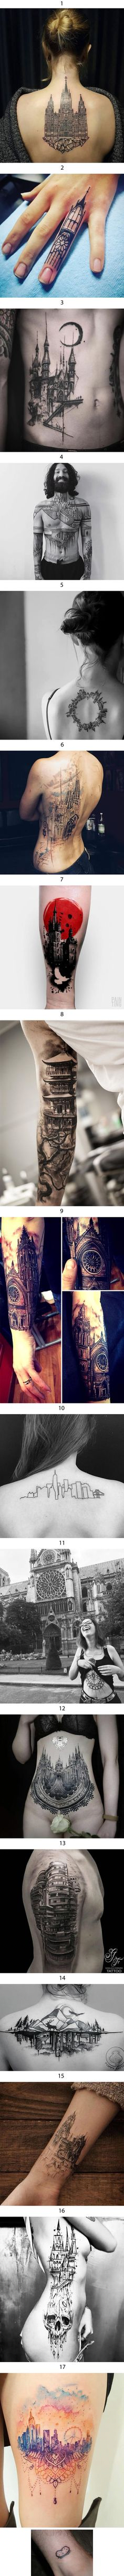 17 Best architectural tattoos that may make you want one